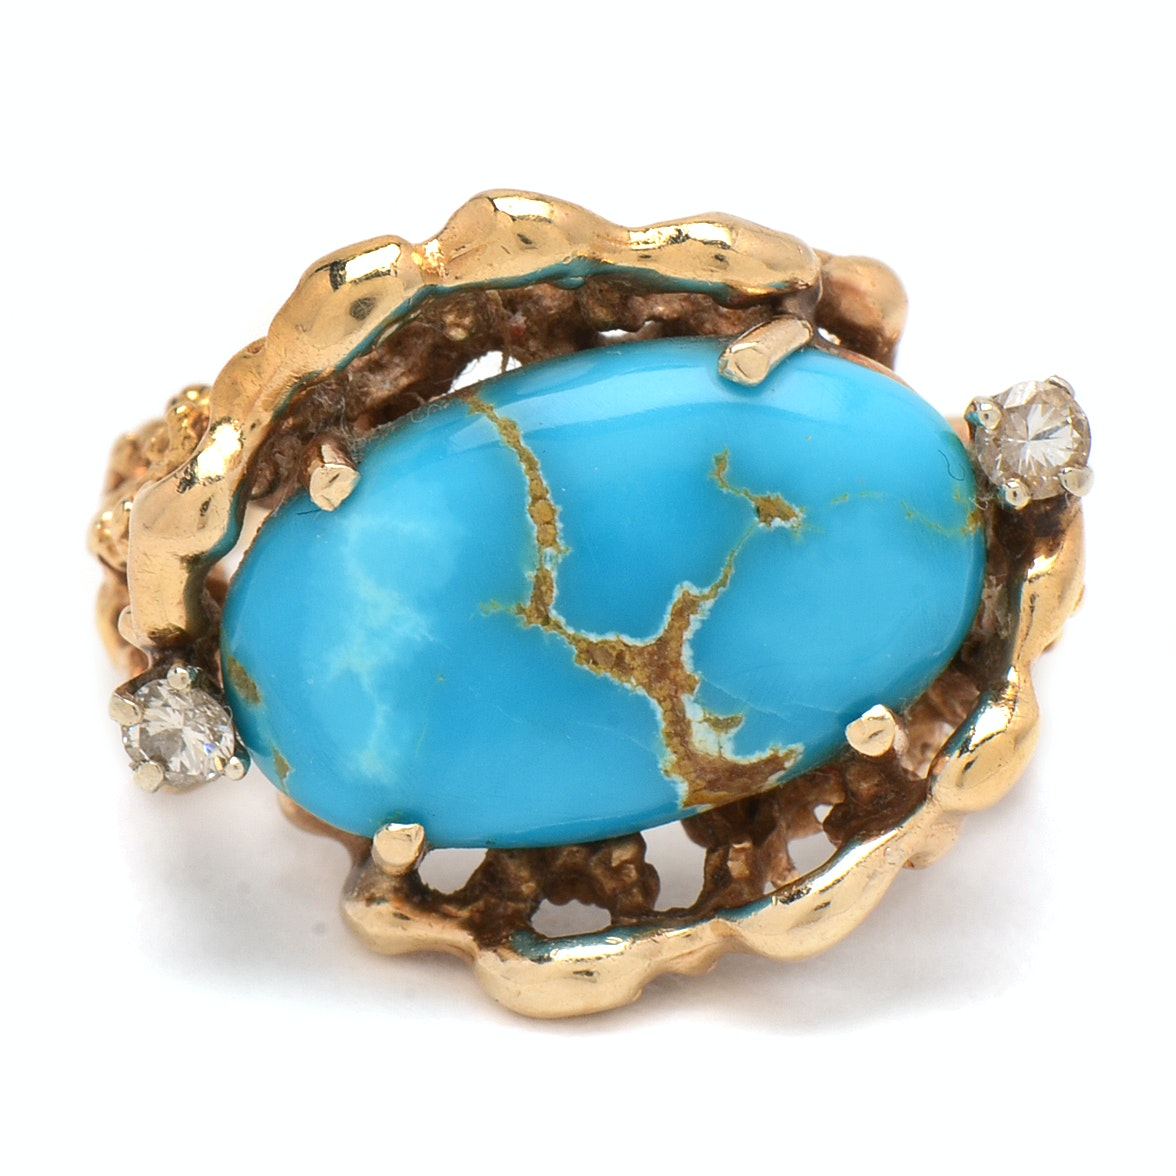 Vintage 14K Yellow Gold, Turquoise and Diamond Ring in an Organic Setting